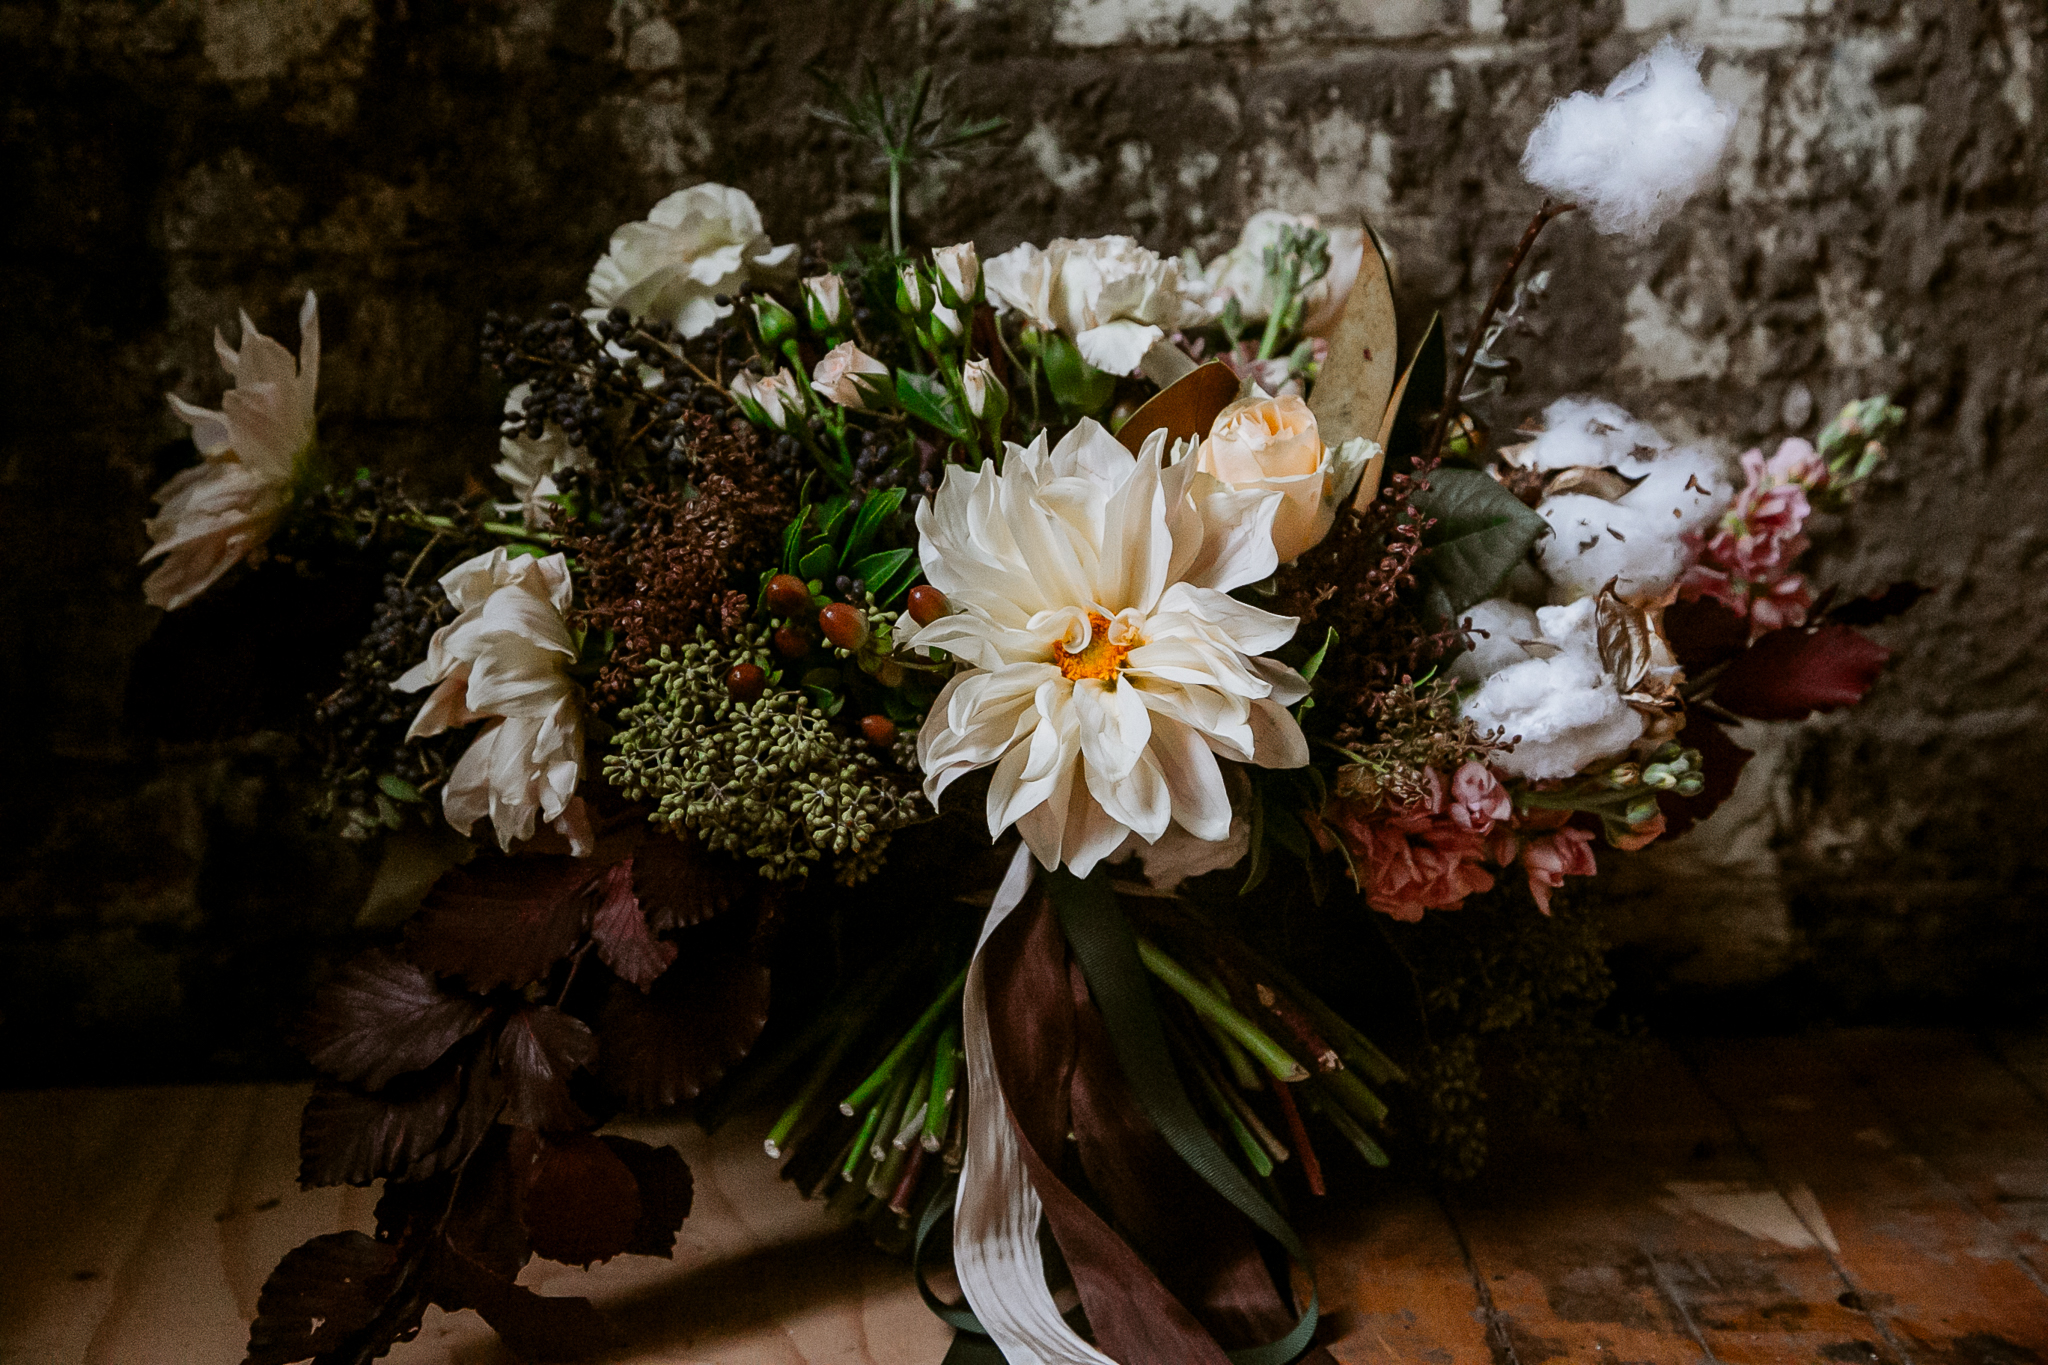 Watershed_Floral__inspiration_maine-46.jpg